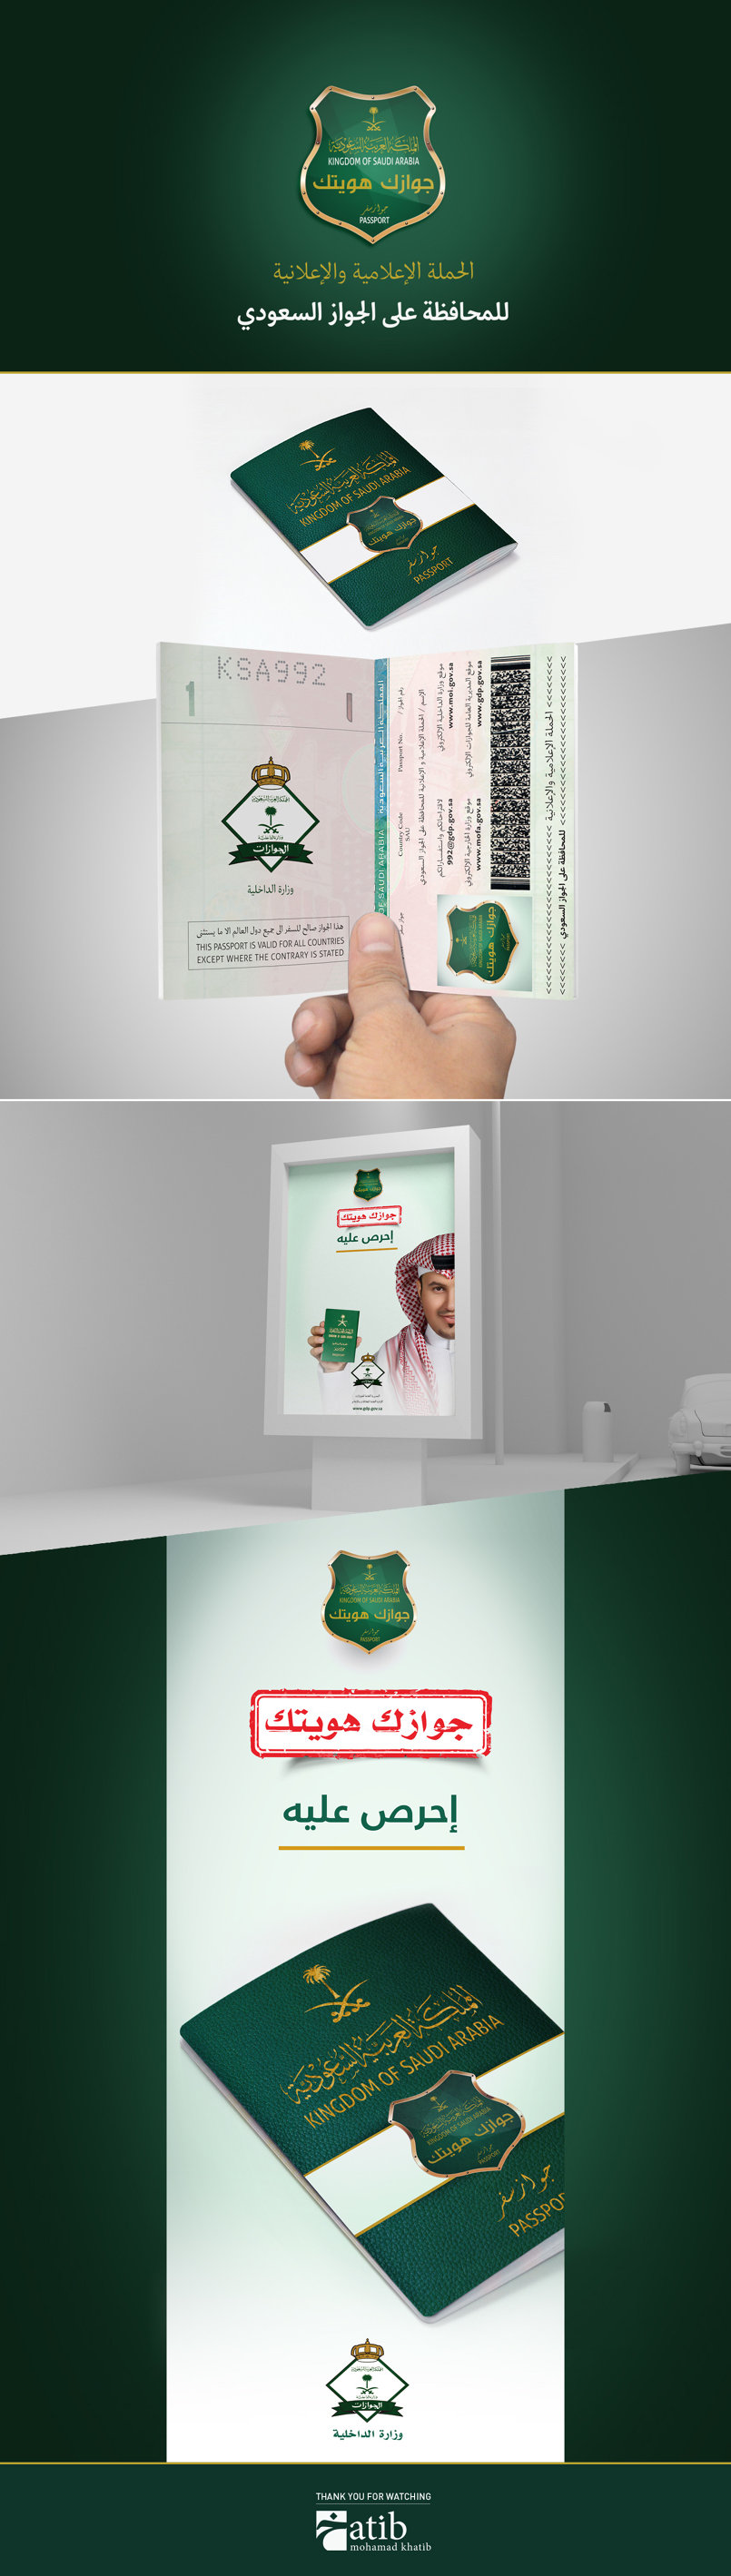 Advertising campaign to preserve the Saudi passport